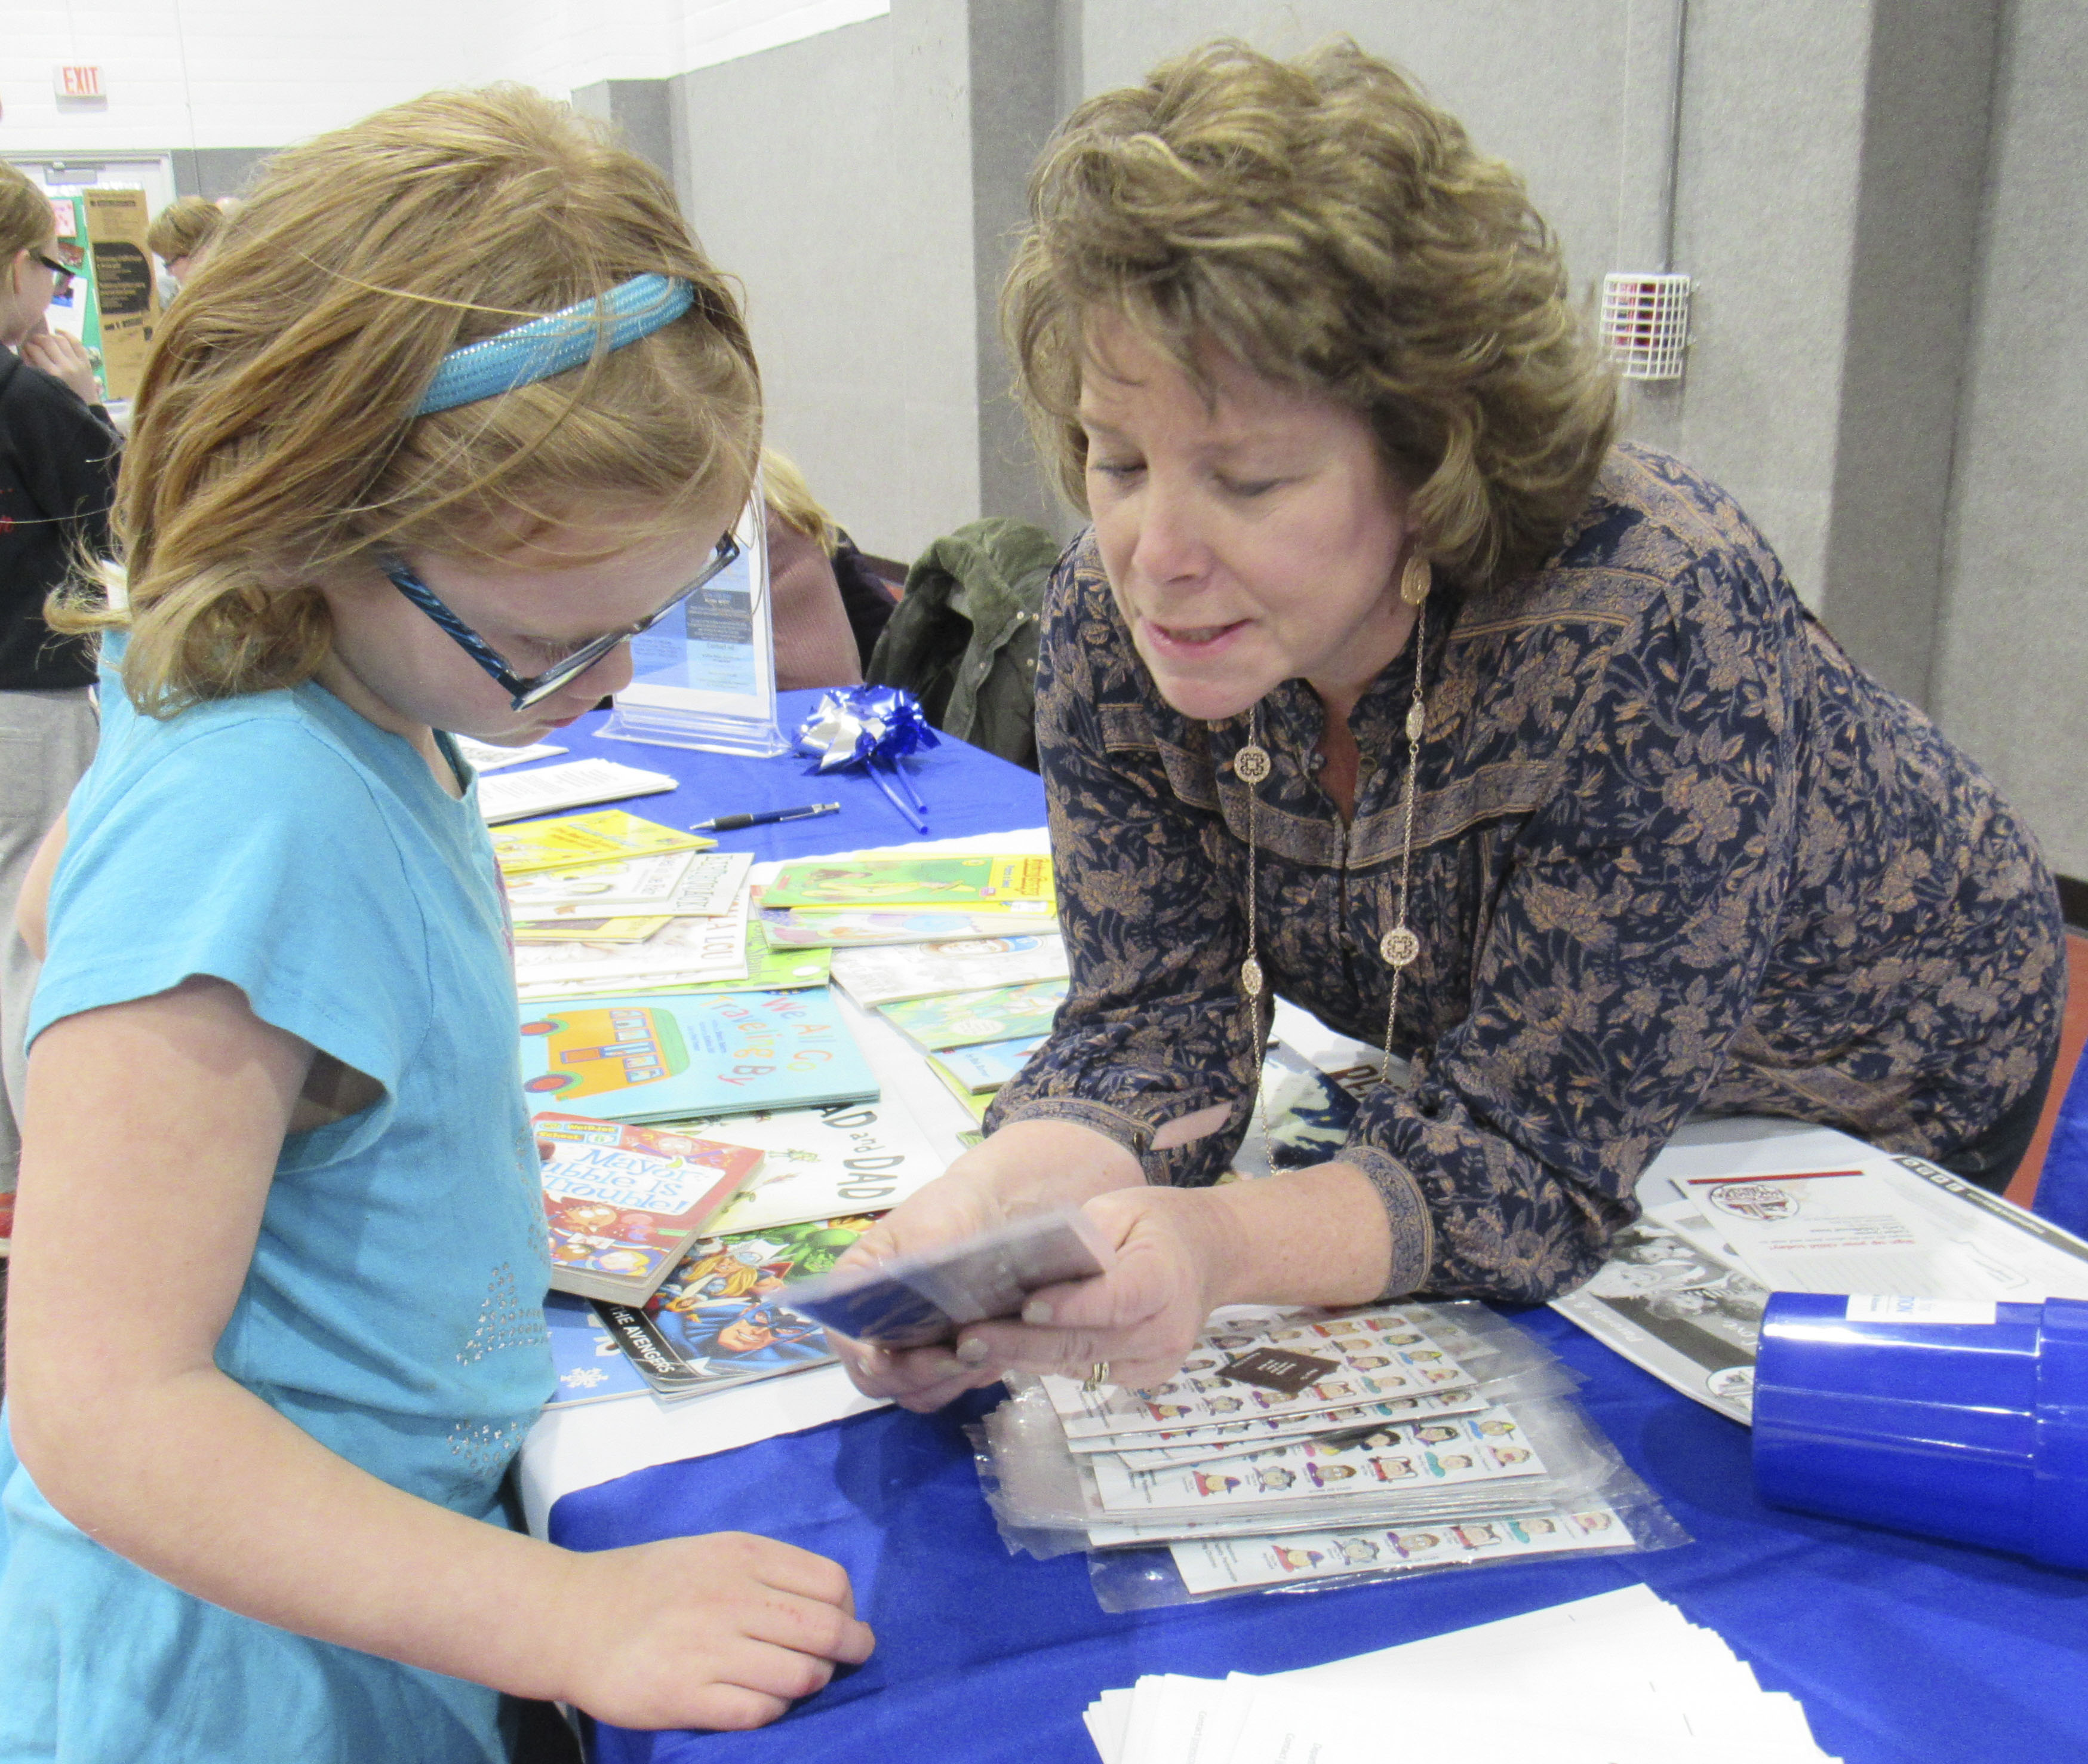 Monticello Family Night also included several educational vendors. Sherri Hunt with Early Childhood Iowa Cedar/Jones and Jones County Community Partnerships for Protecting Children handed out free books and stickers to children, including Bianca Lovell, fourth grade.